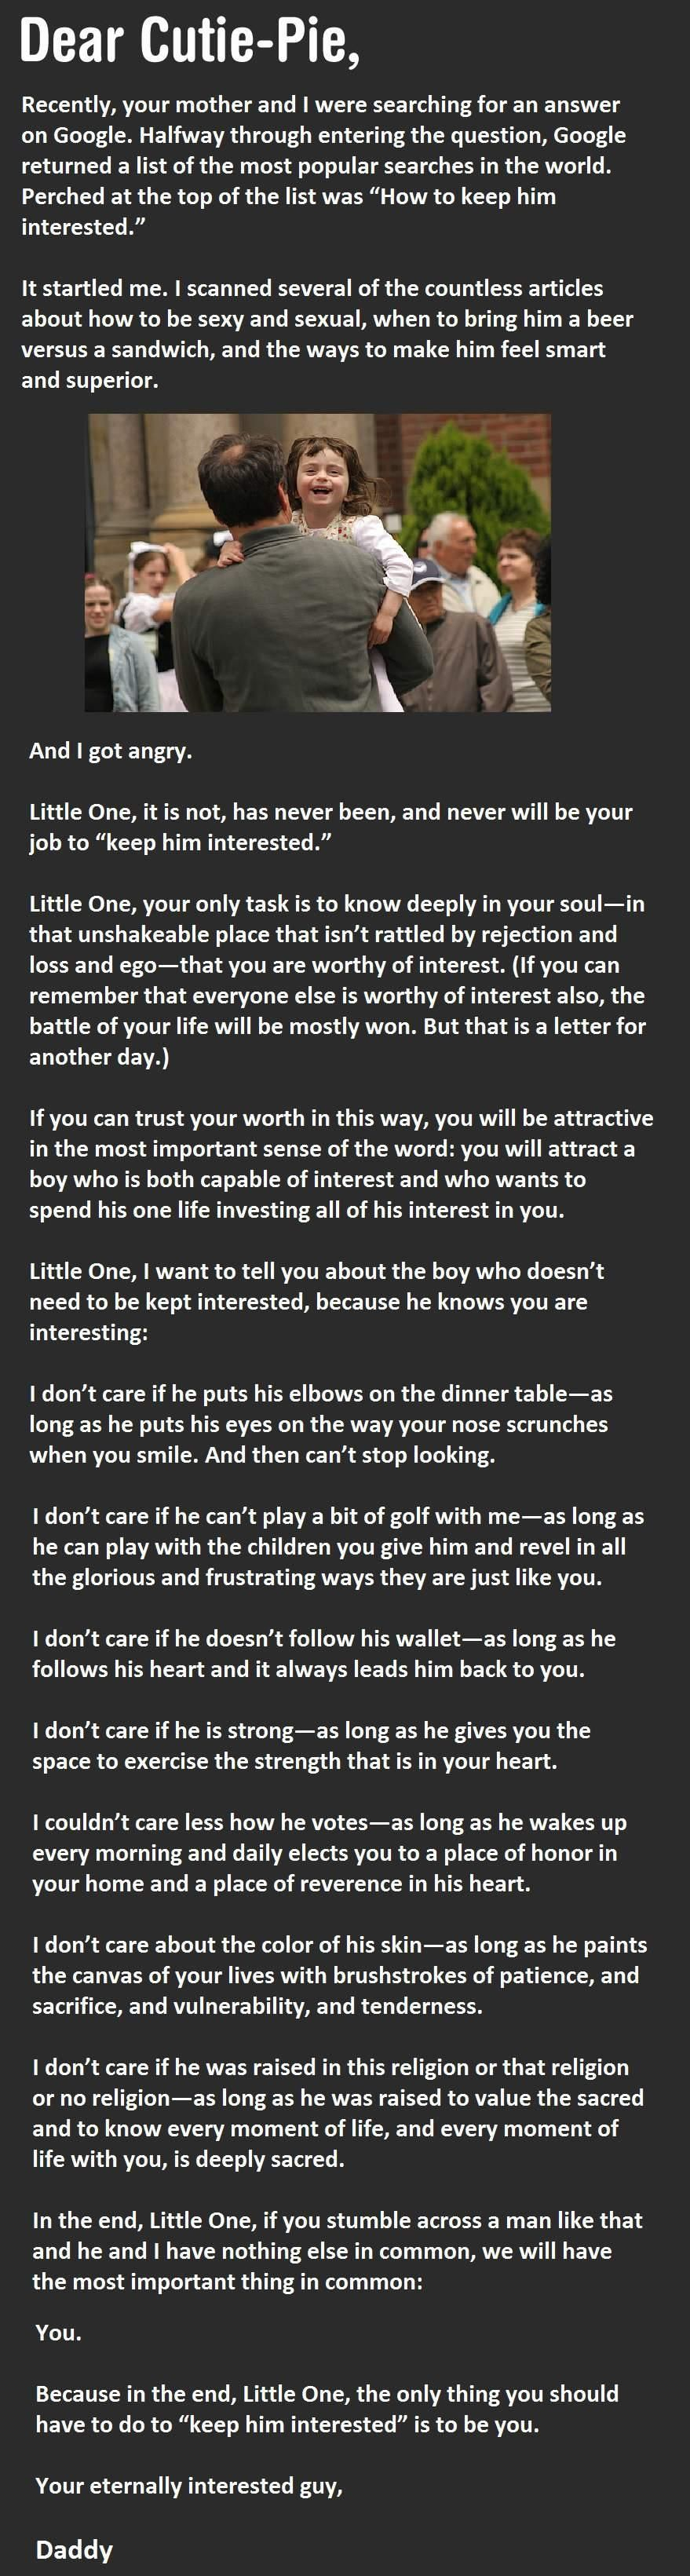 After Getting On His Daughter's Computer, This Dad Writes This Letter...